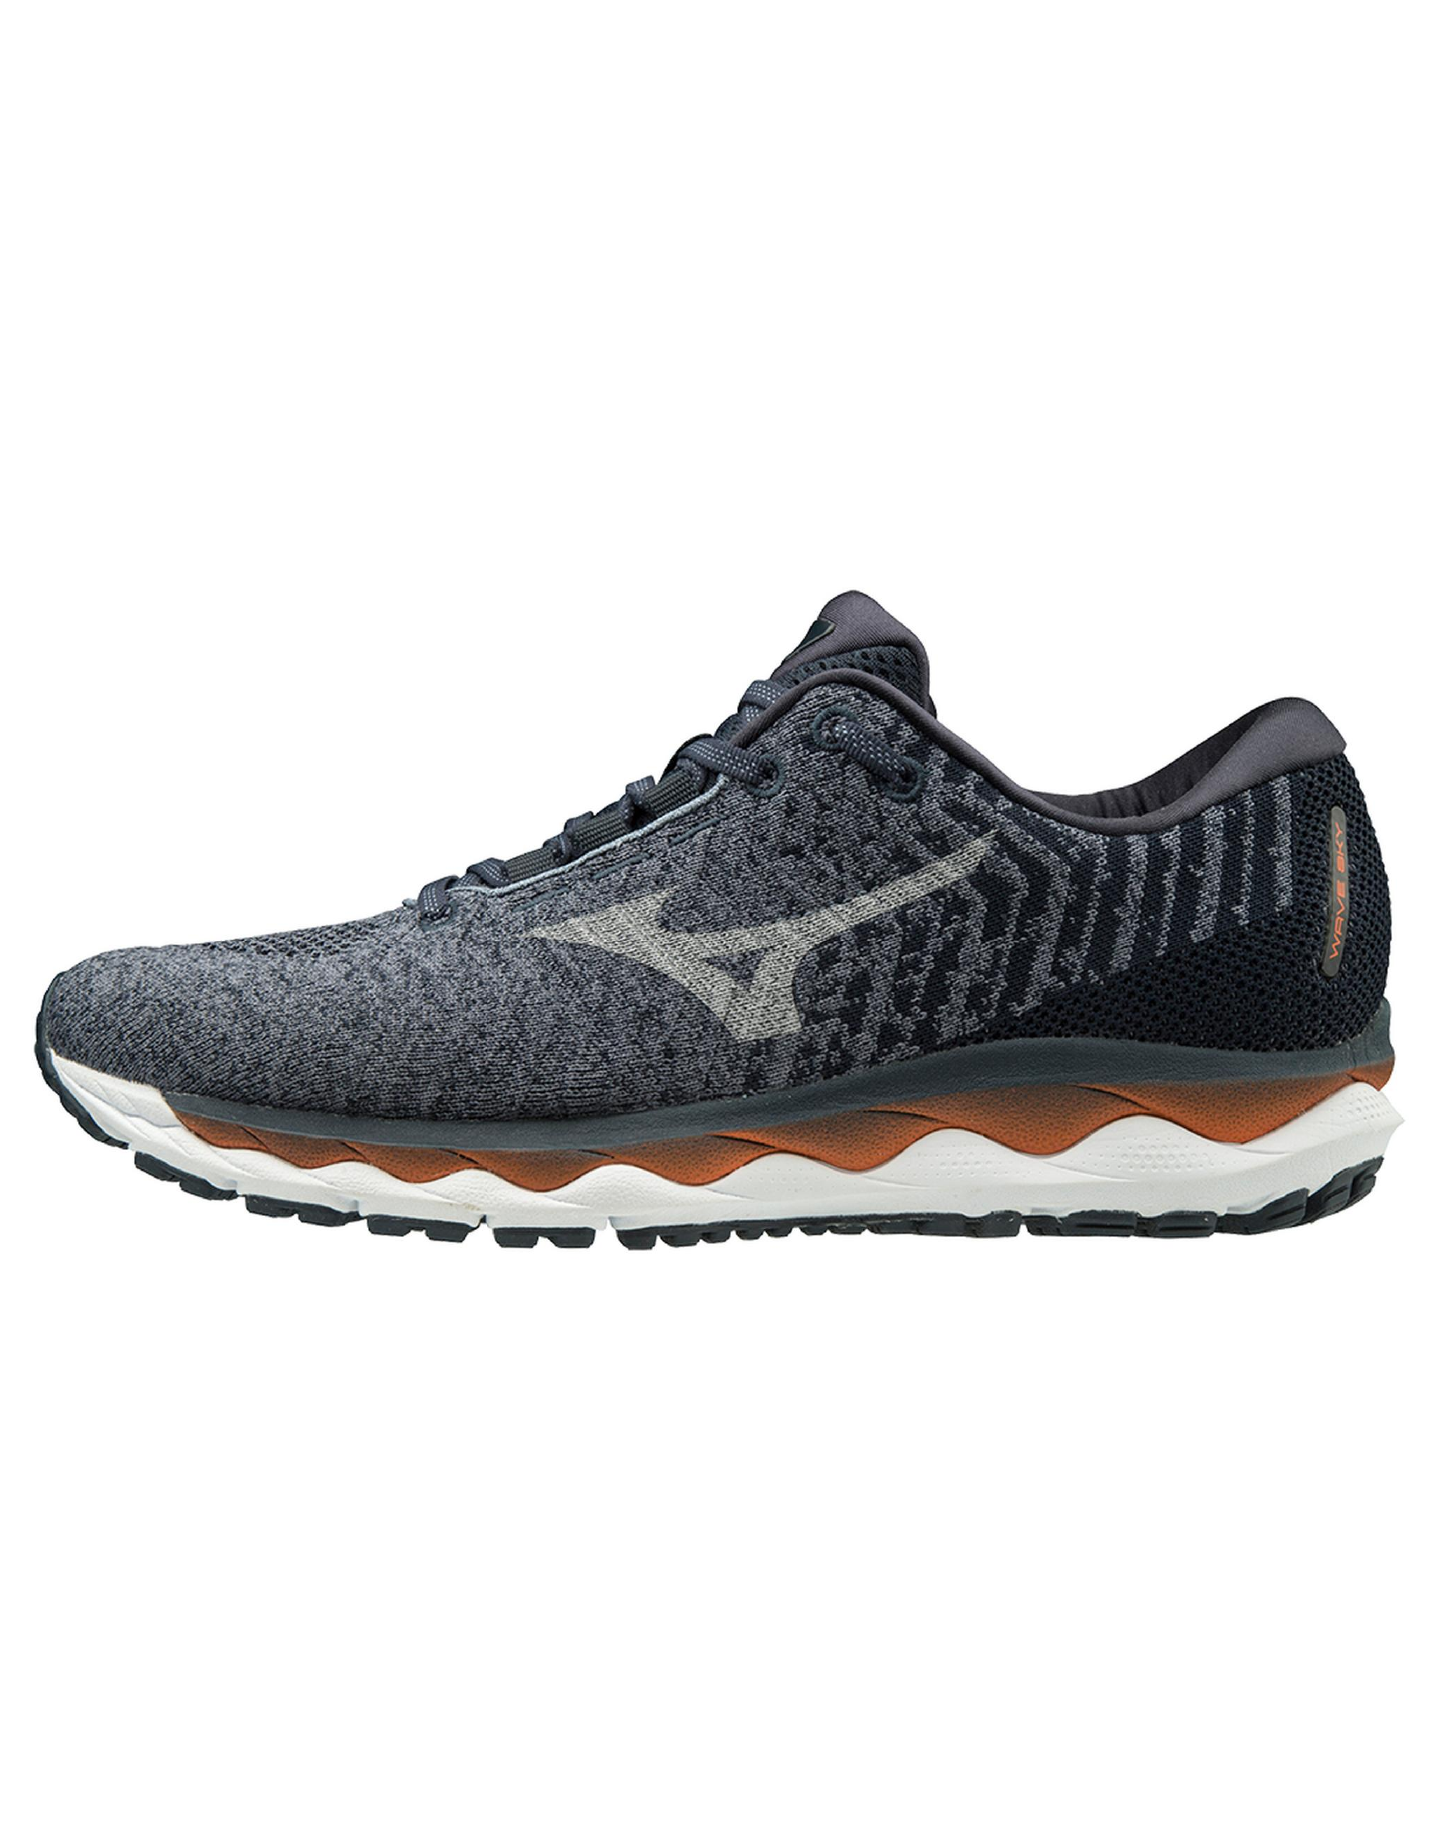 Mizuno Mizuno Wave Sky Waveknit 3 - Men